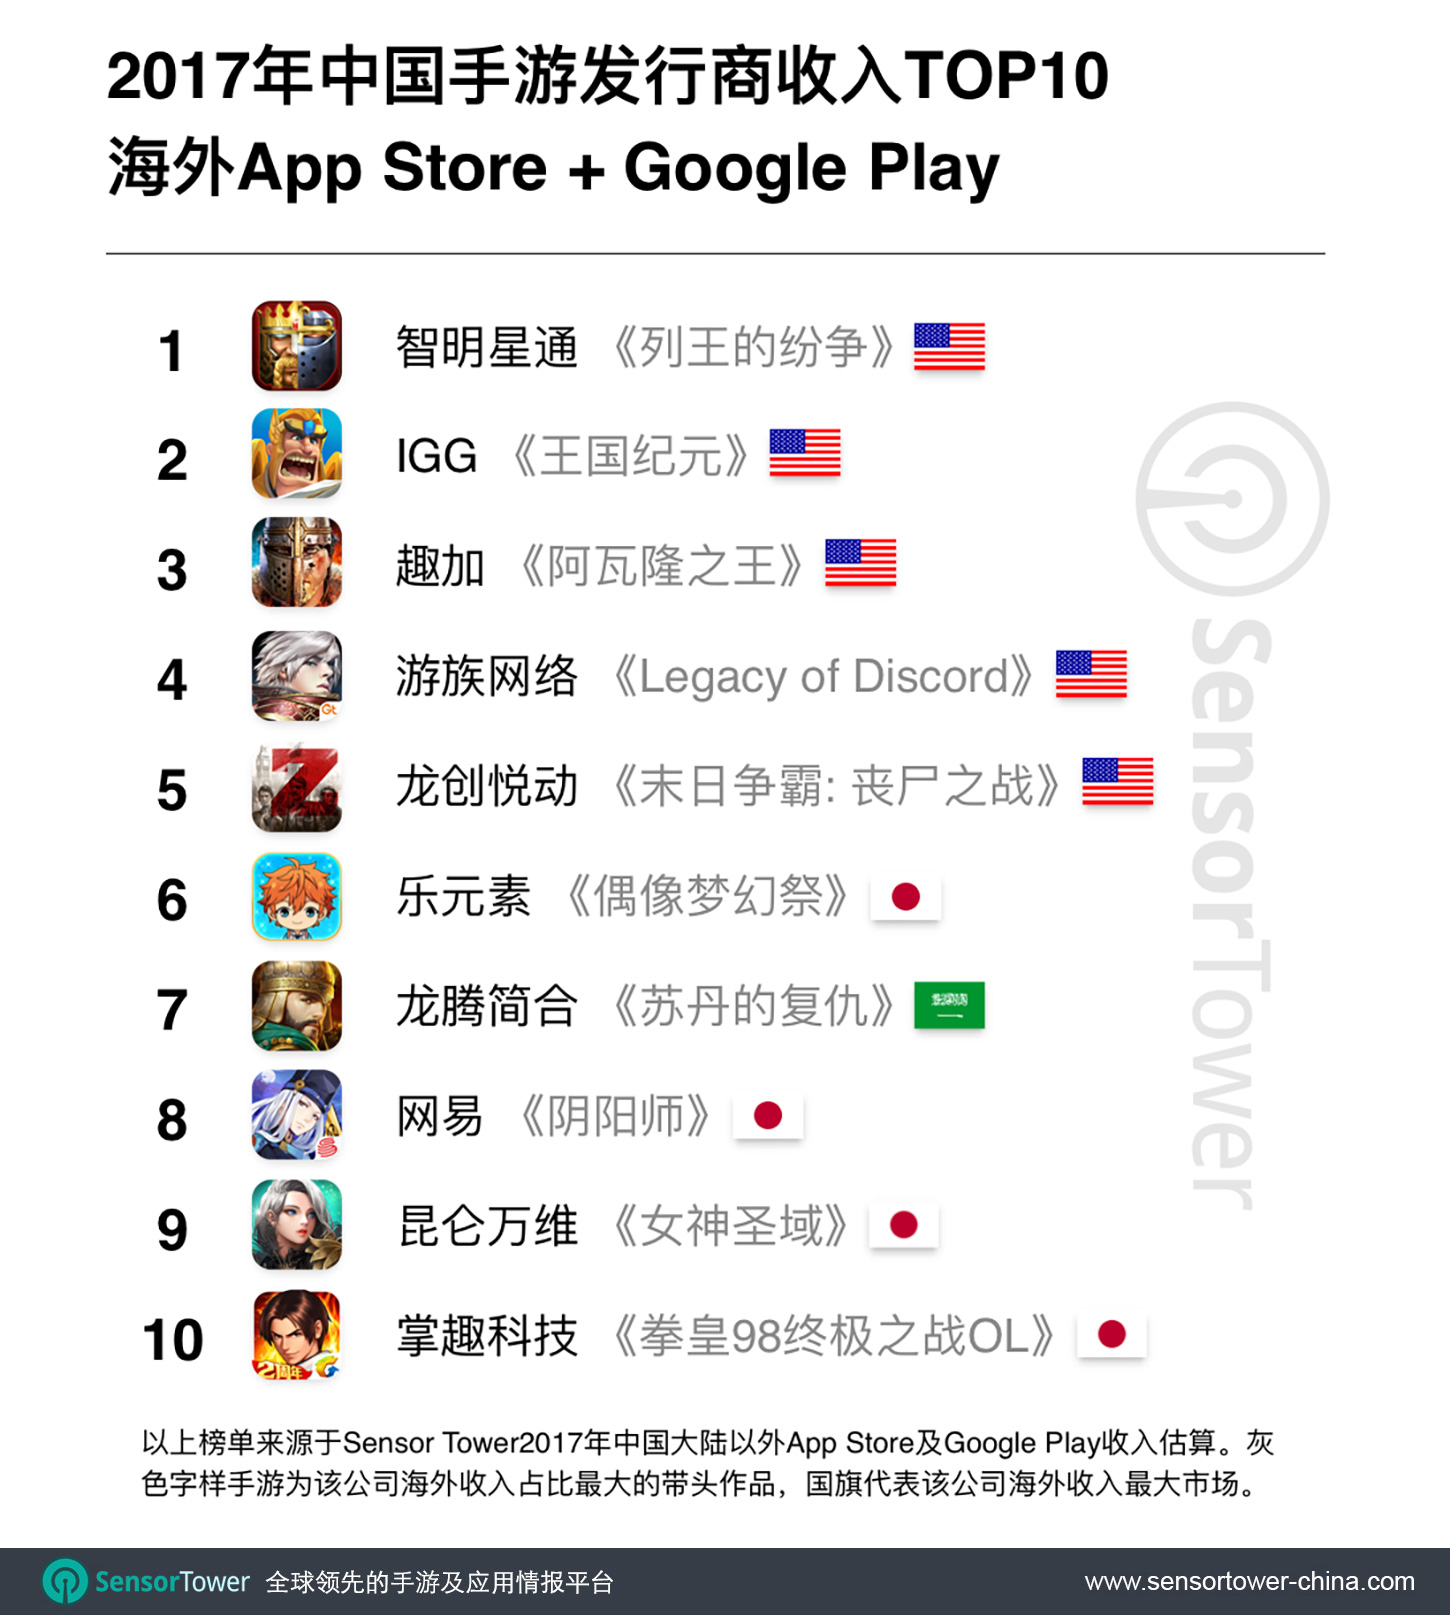 2017 Top 10 Grossing Chinese Mobile Game Publishers Outside China